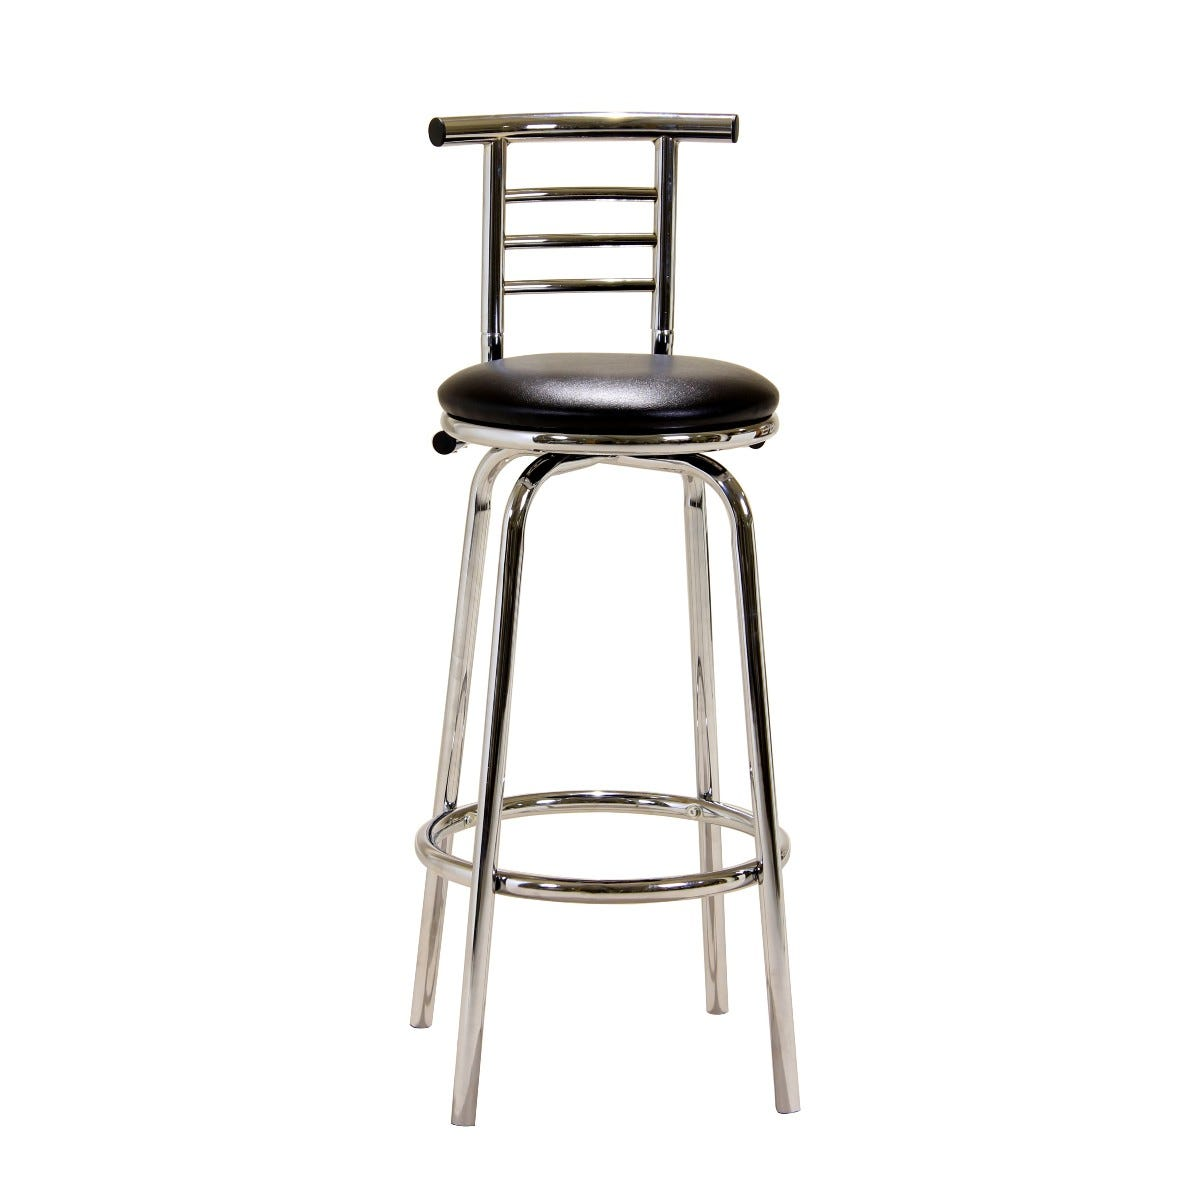 104cm Chrome Bar Stool with Swivel Seat and Backrest